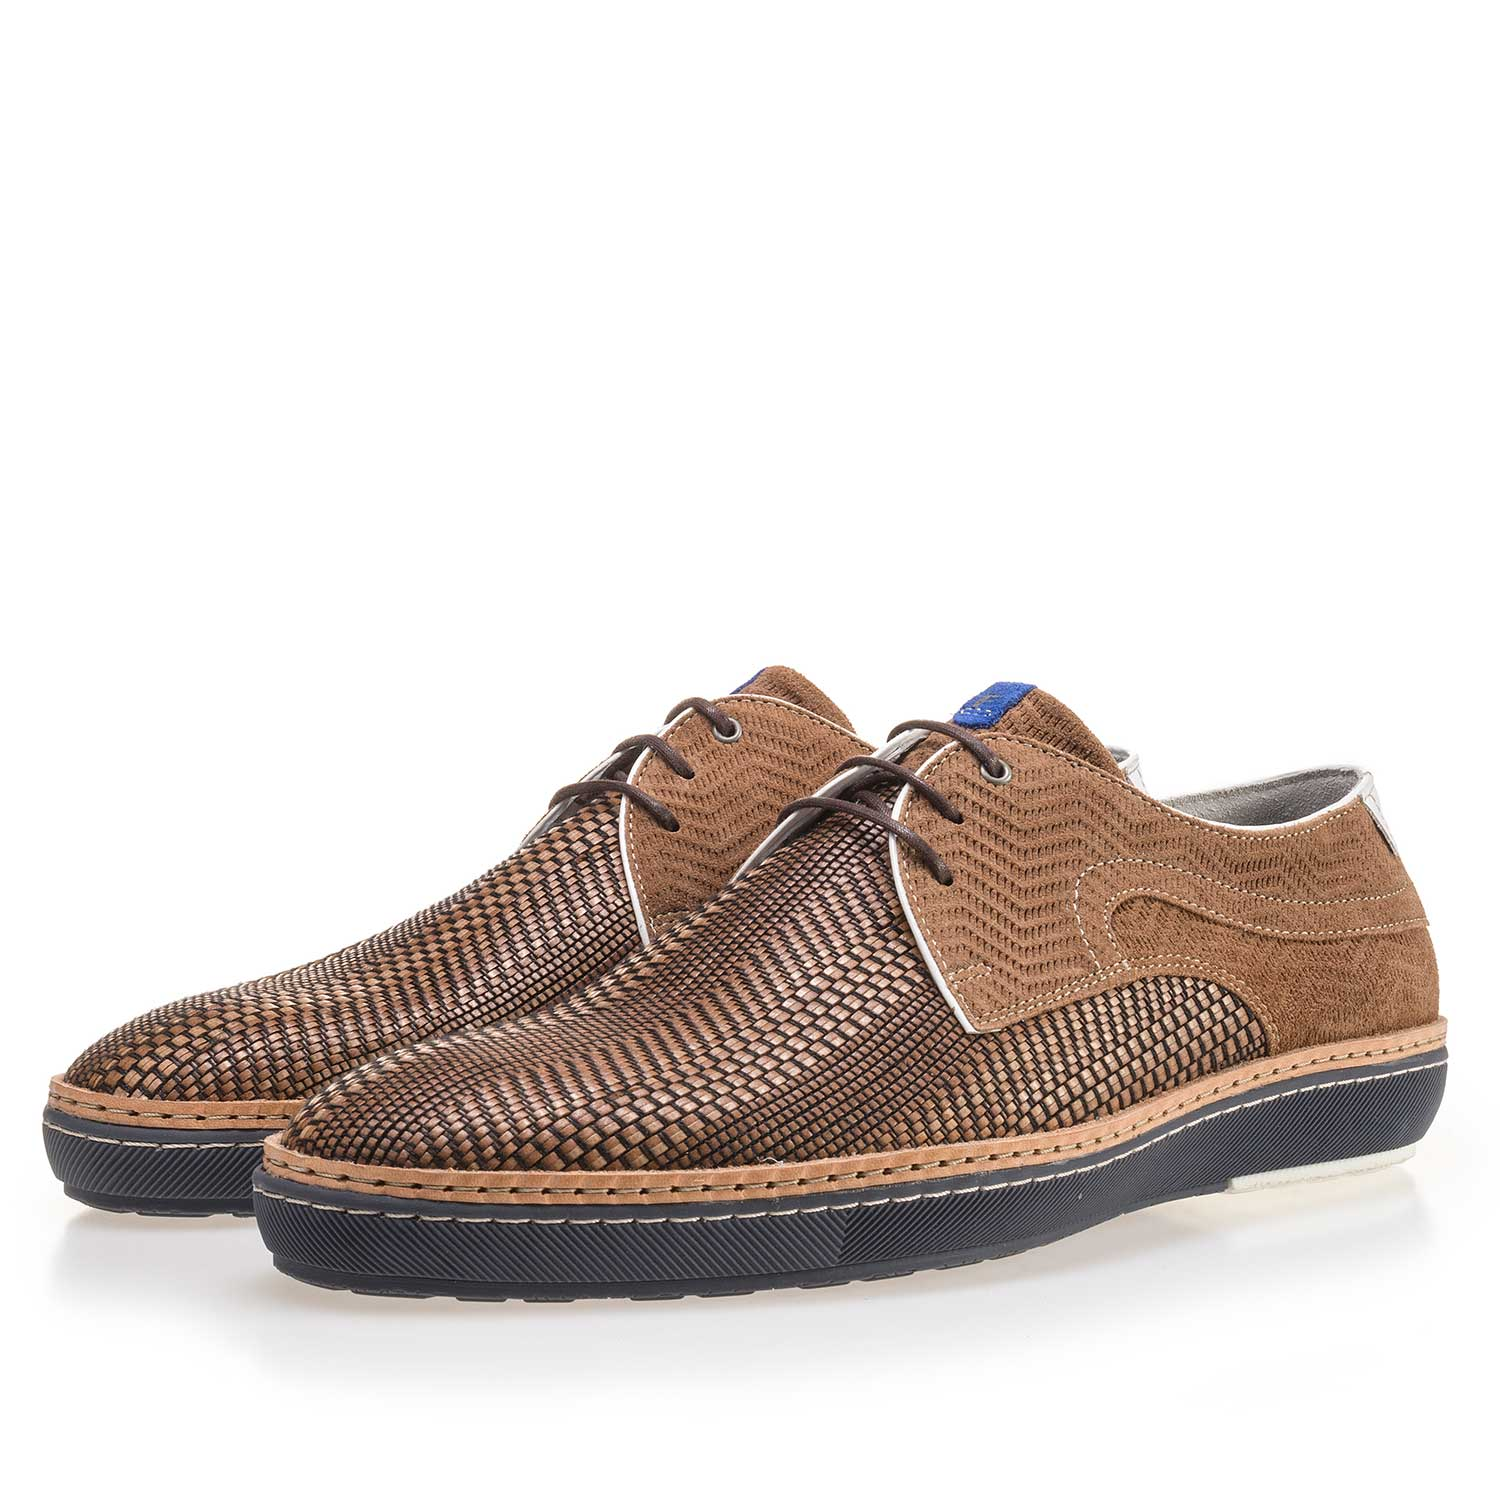 14027/02 - Cognac-coloured lace shoe made of braided leather